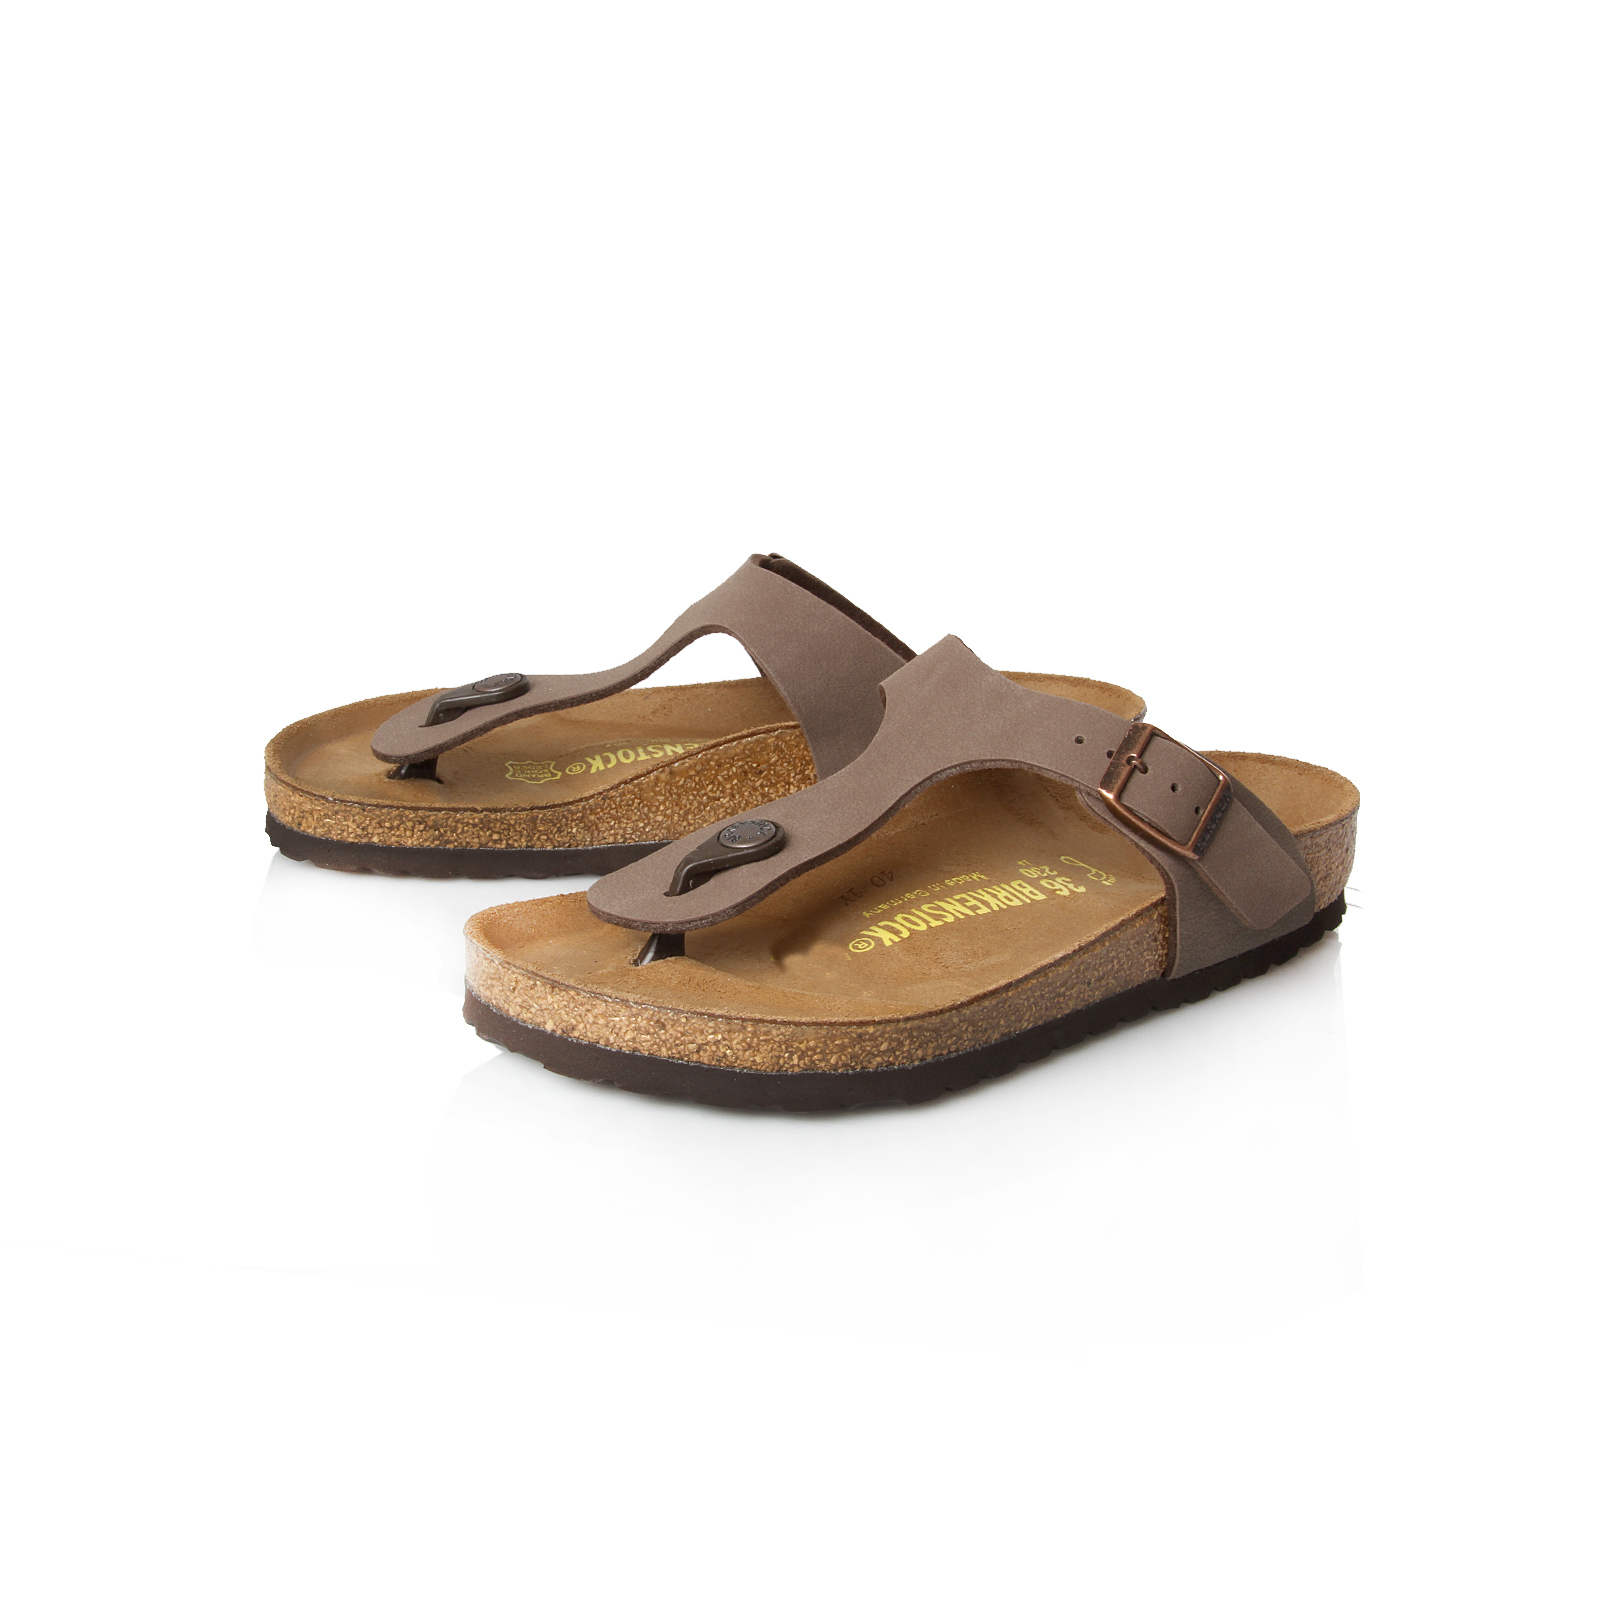 gizeh birkenstock gizeh brown flat sandals by birkenstock. Black Bedroom Furniture Sets. Home Design Ideas